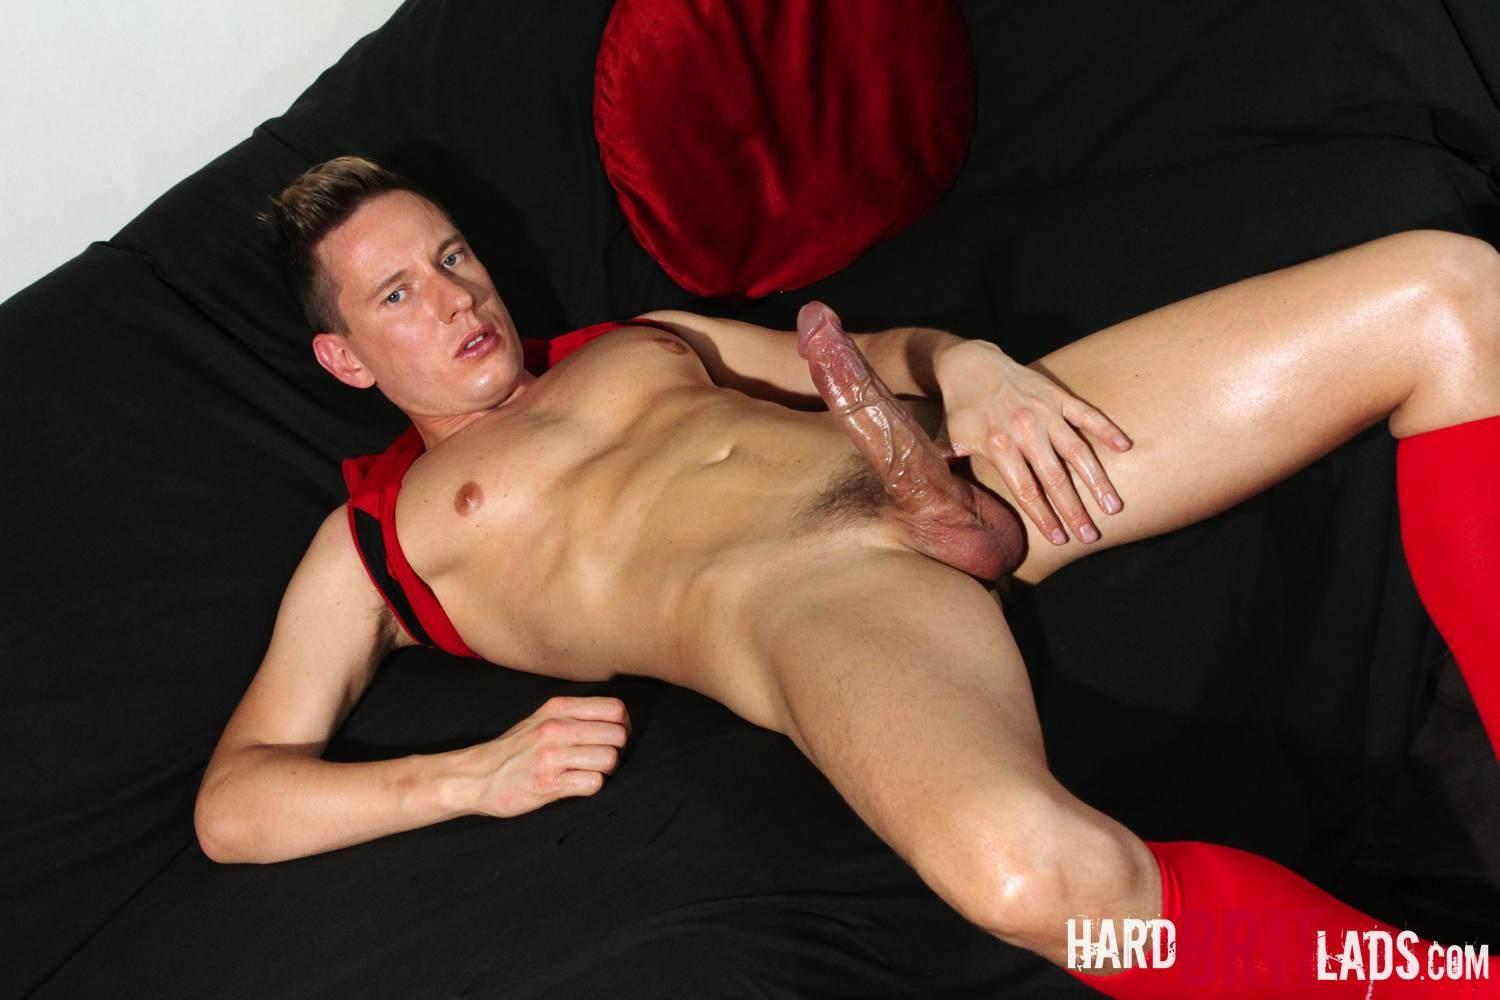 Hard-Brit-Lads-James-Hard-Soccer-Player-Jerking-his-Big-Uncut-Cock-Amateur-Gay-Porn-20 Straight Soccer Player Jerking Off His Huge Uncut Cock